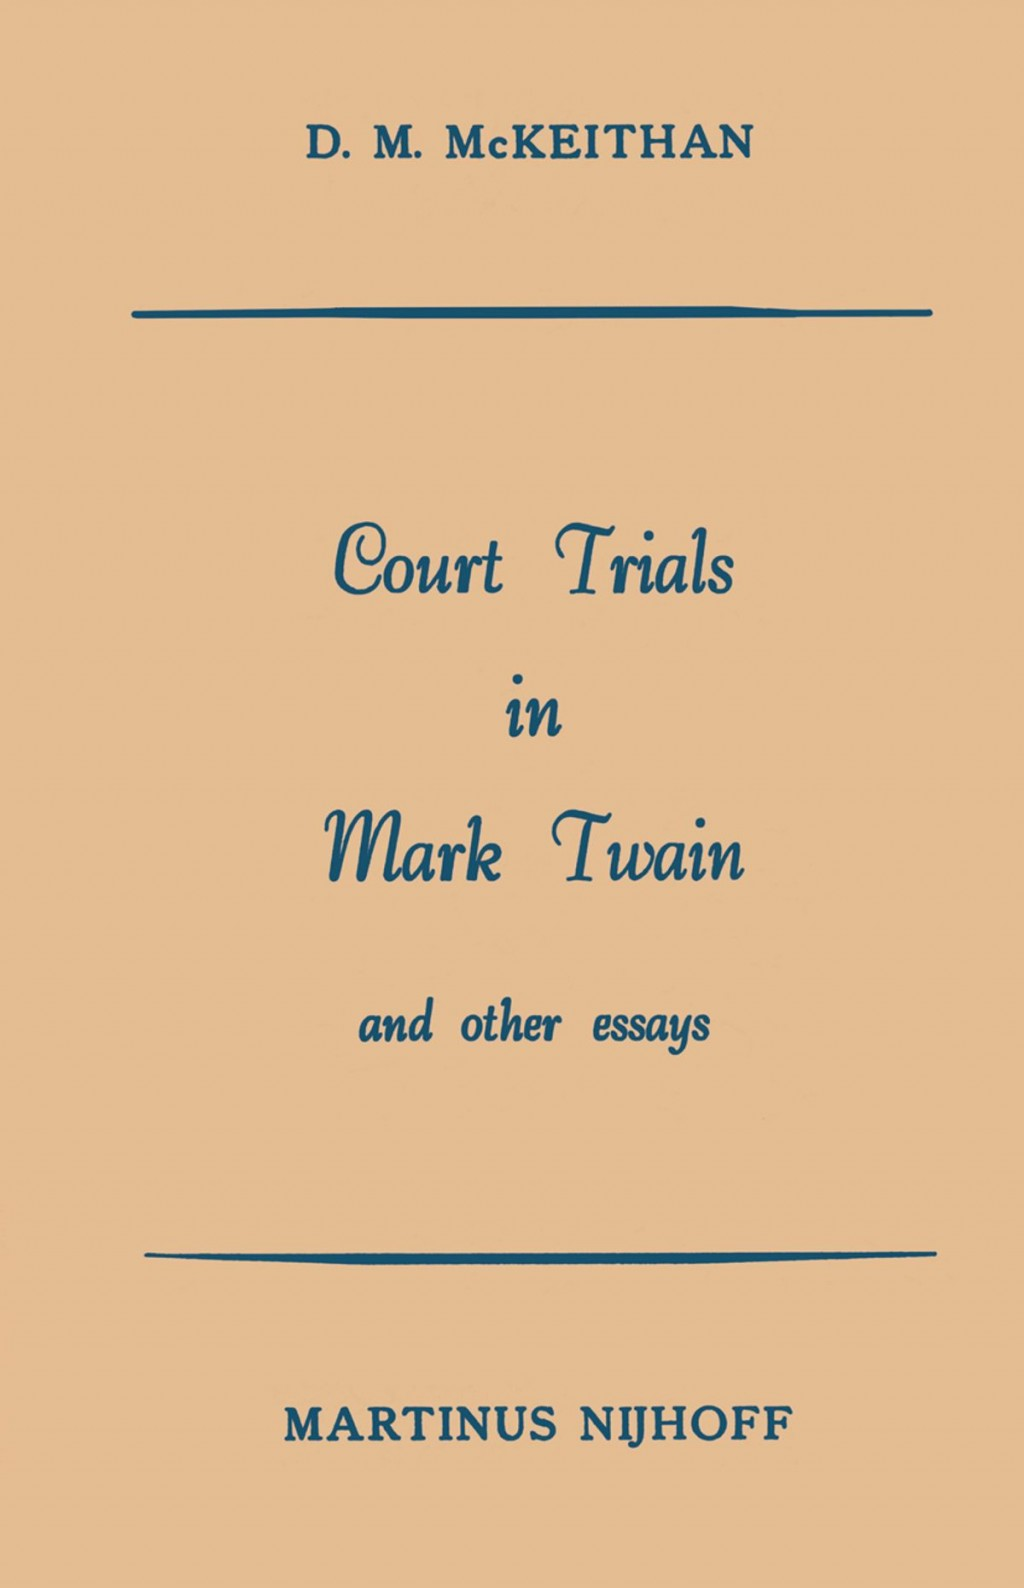 006 Court Trials In Mark Twain And Other Essays Essay Surprising Pdf On Writing Nonfiction Large